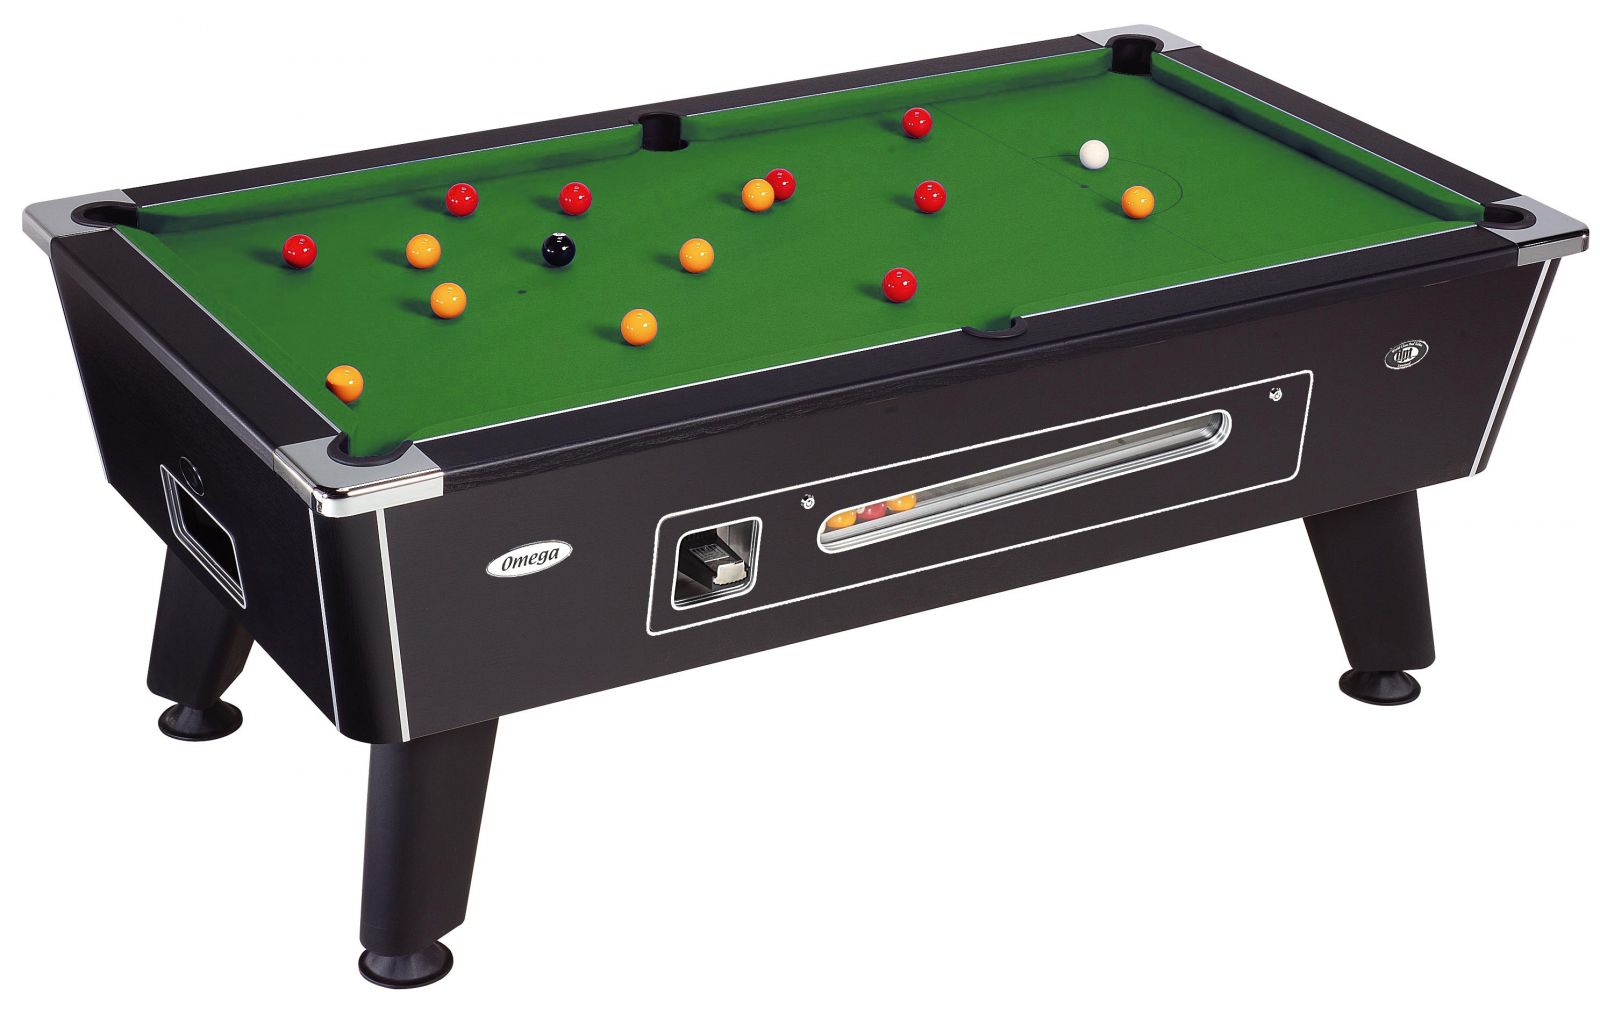 The Omega slate bed pool table